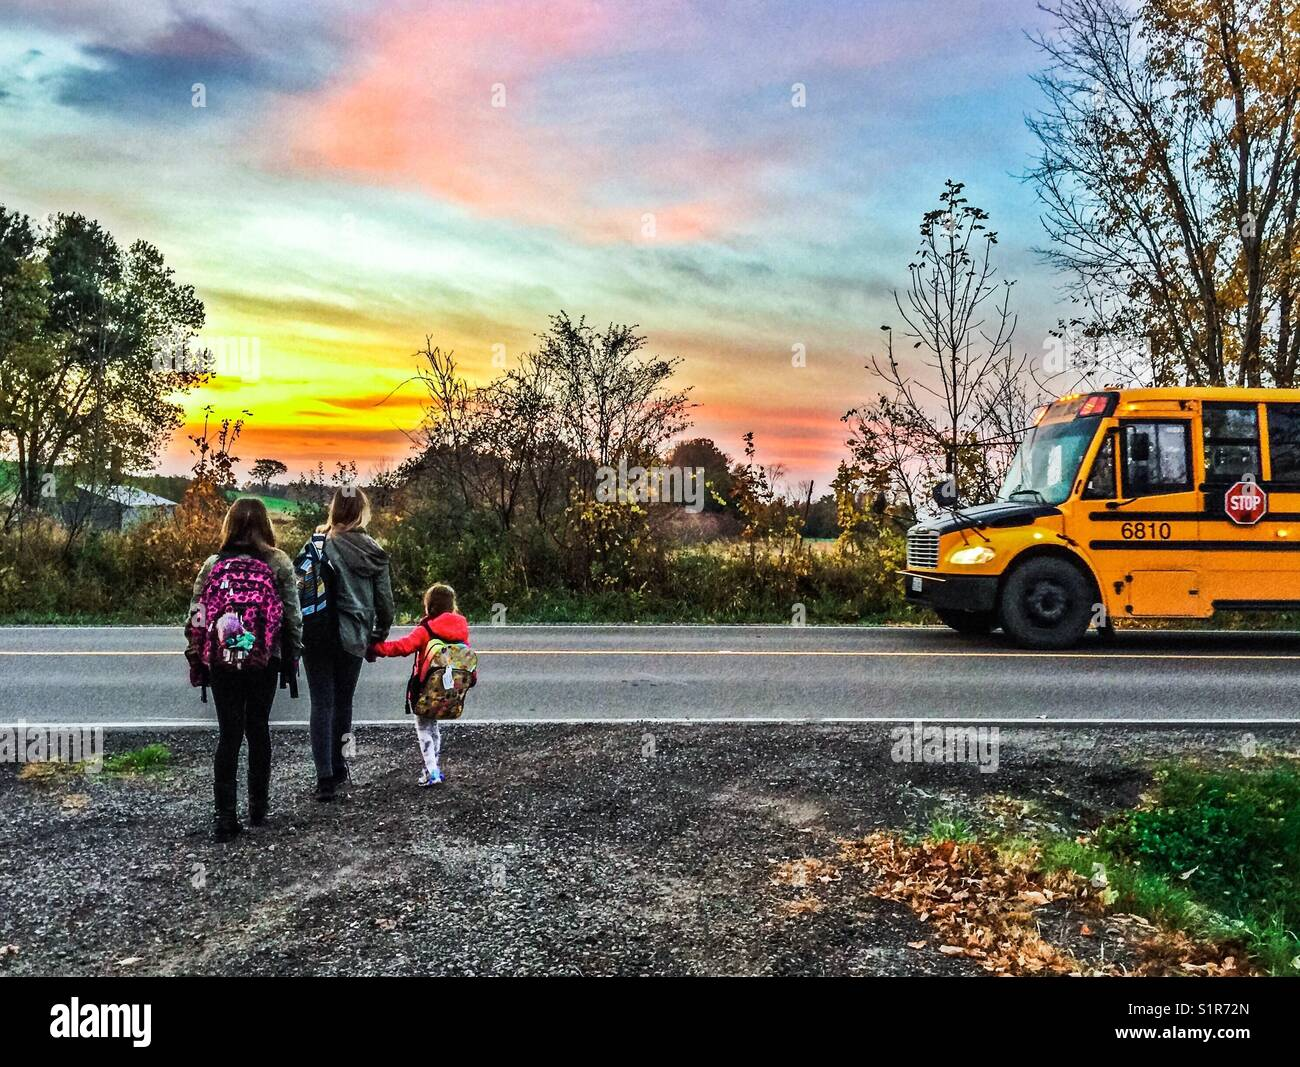 Three girls about to get on school bus in rural Ontario, Canada - Stock Image